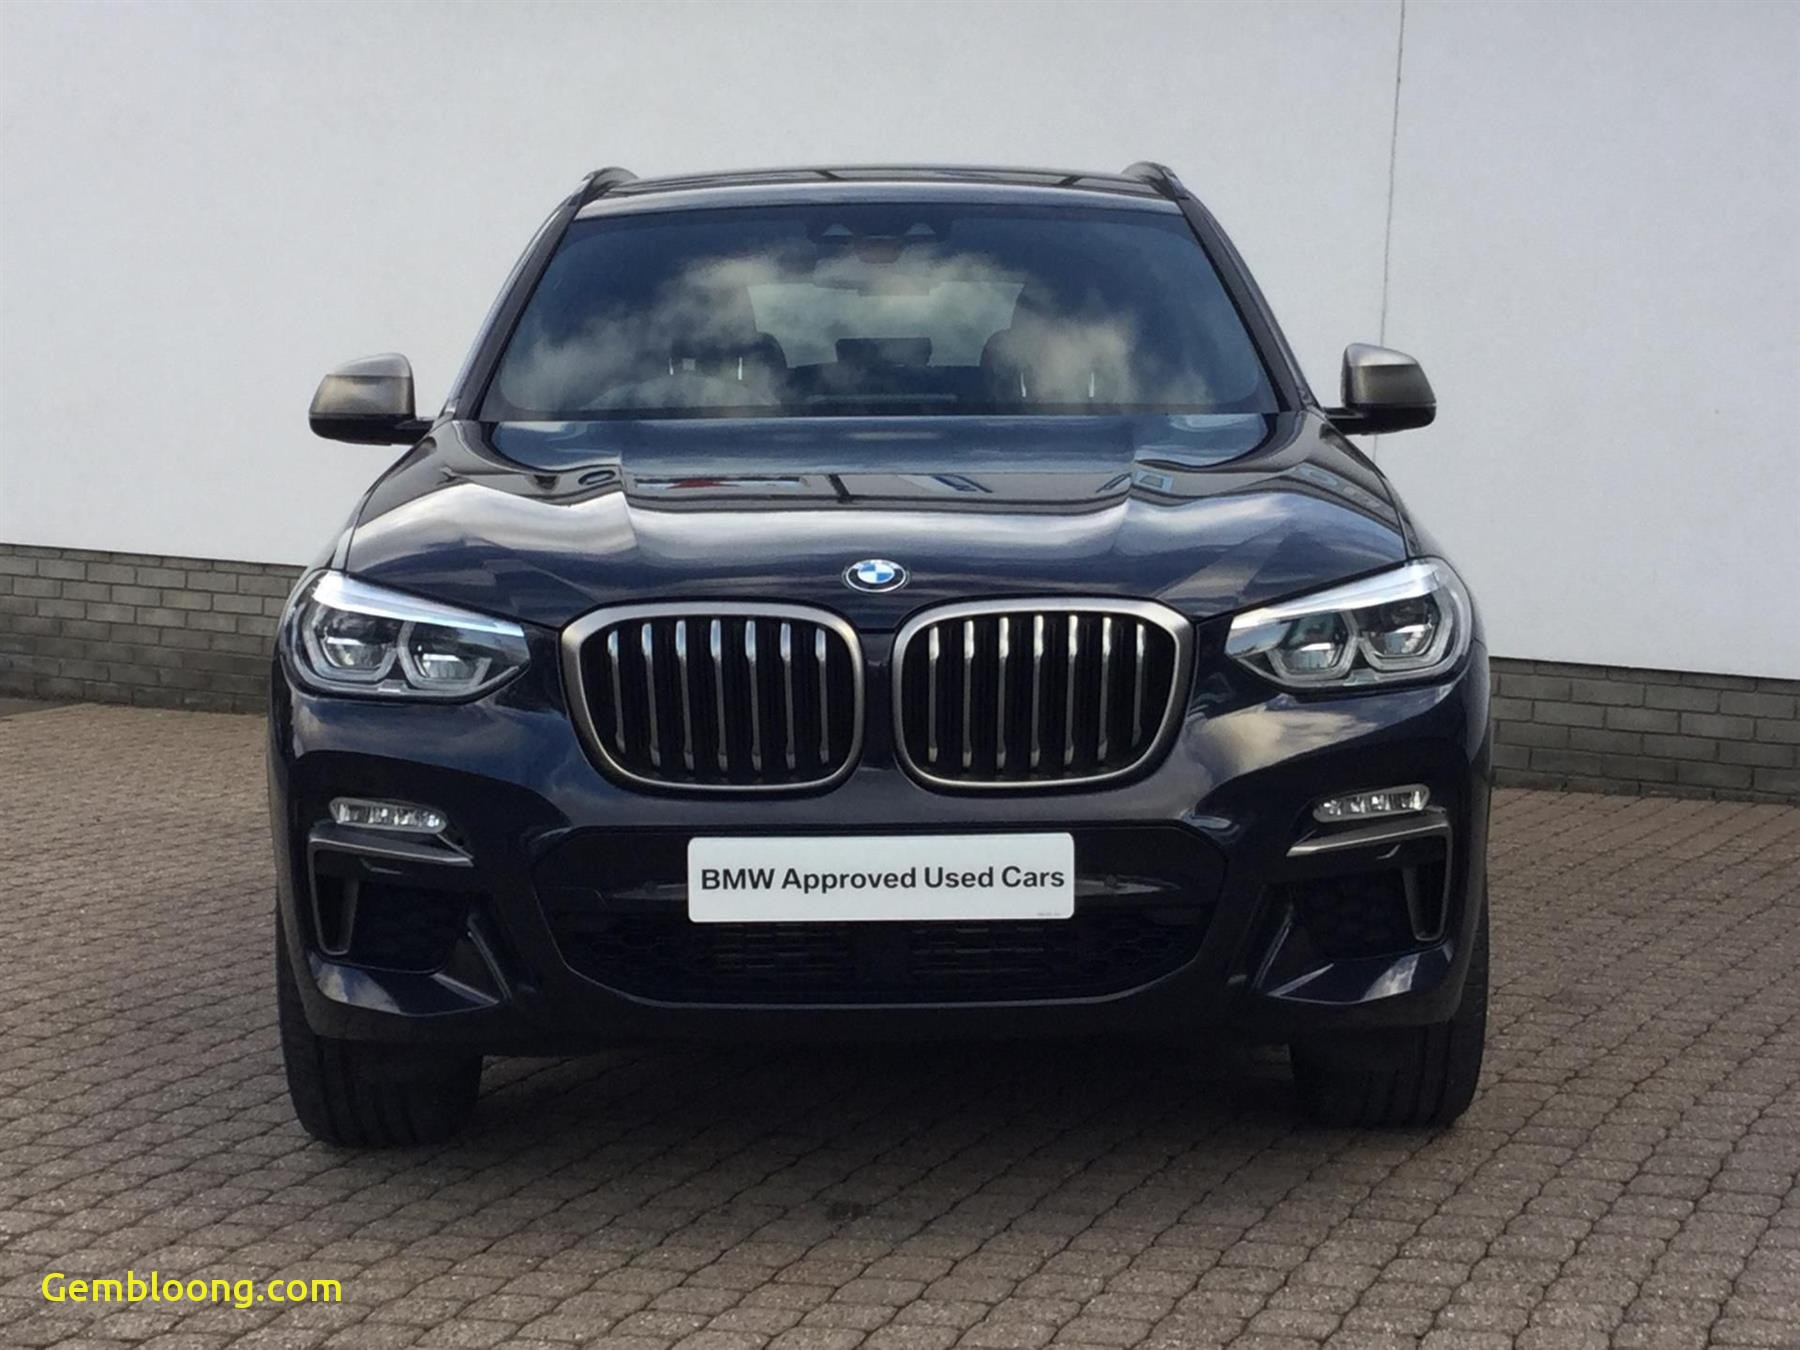 Used Bmw X3 Best Of Used 2019 Bmw X3 G01 X3 M40d Za B57 3 0d for Sale In